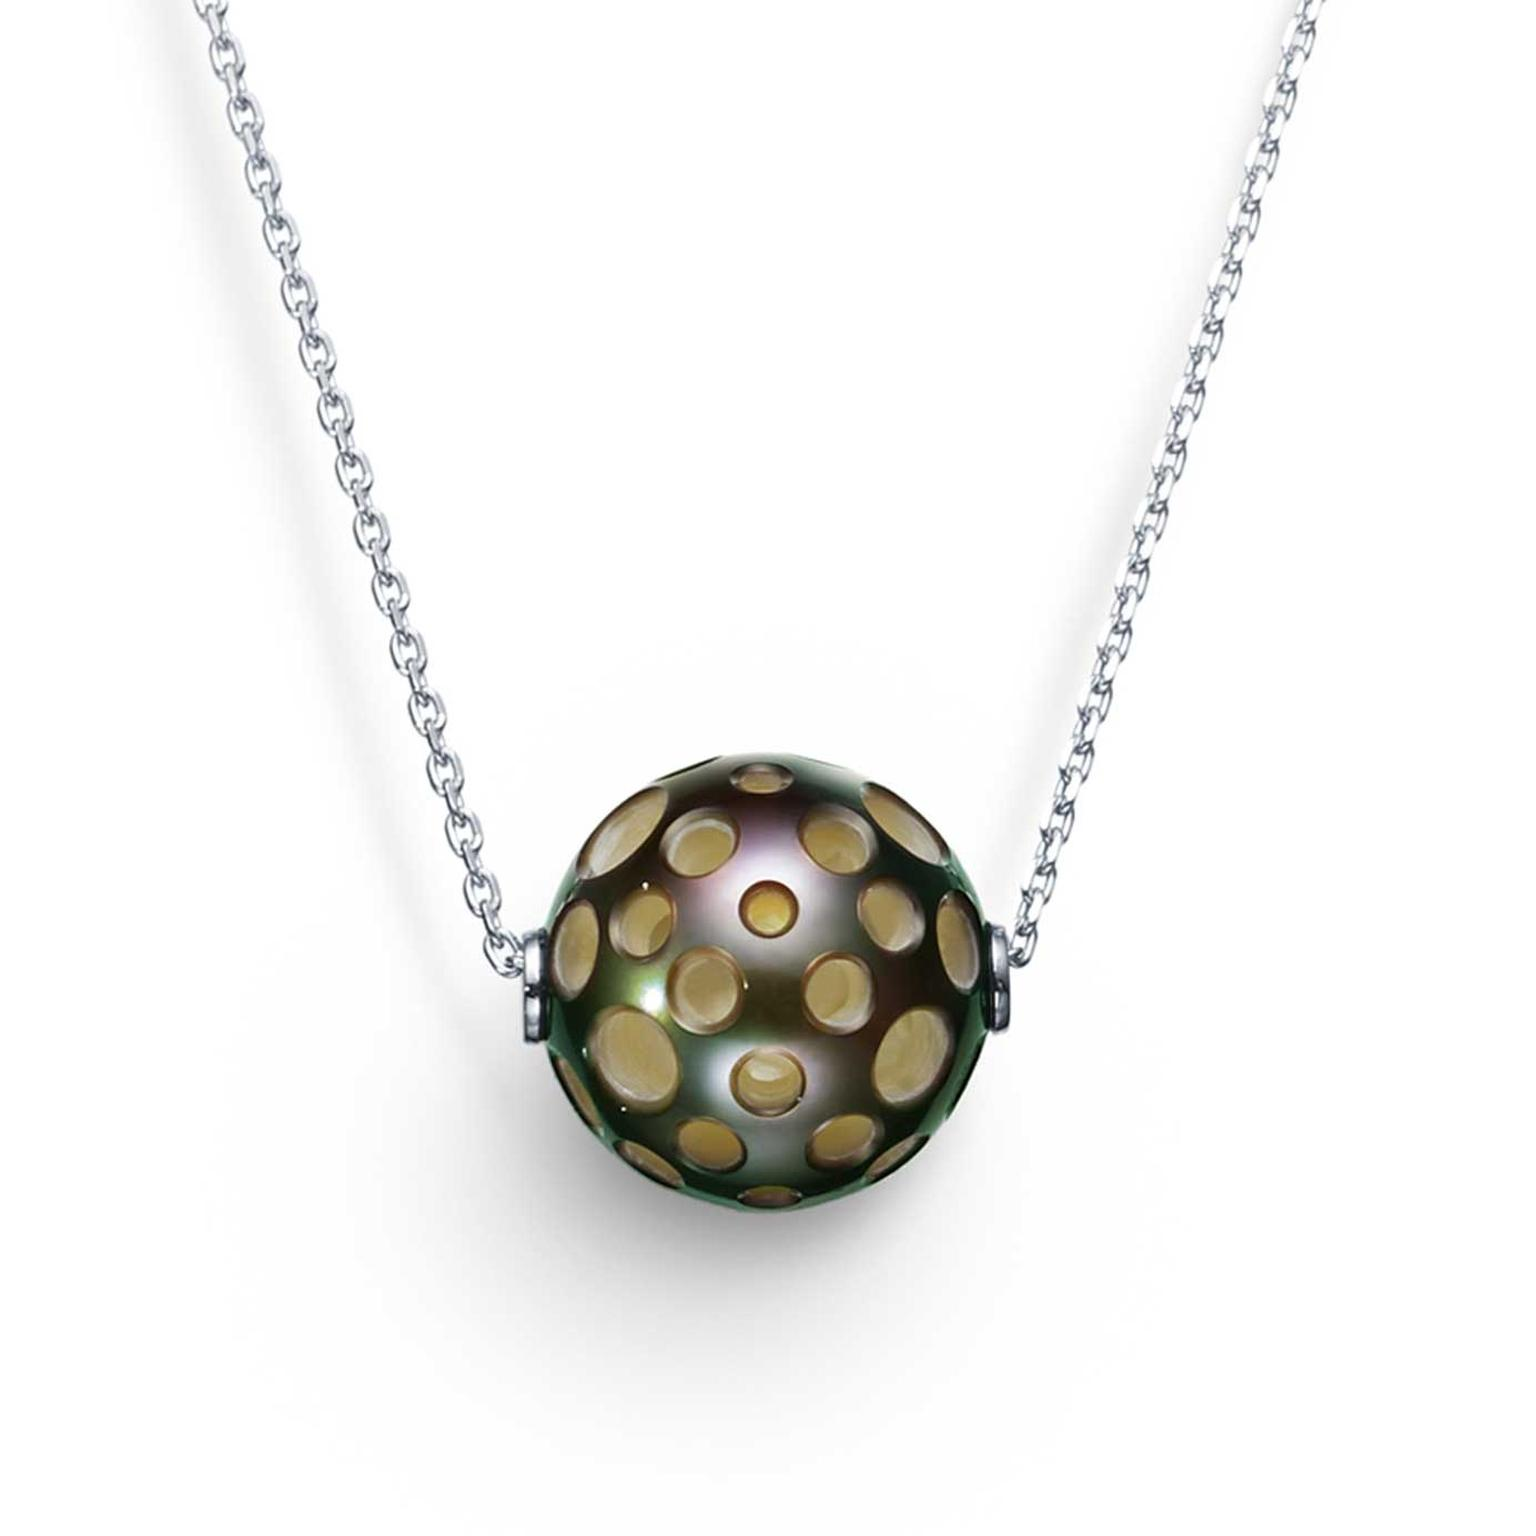 M/G Tasaki Drilled necklace freshwater pearls